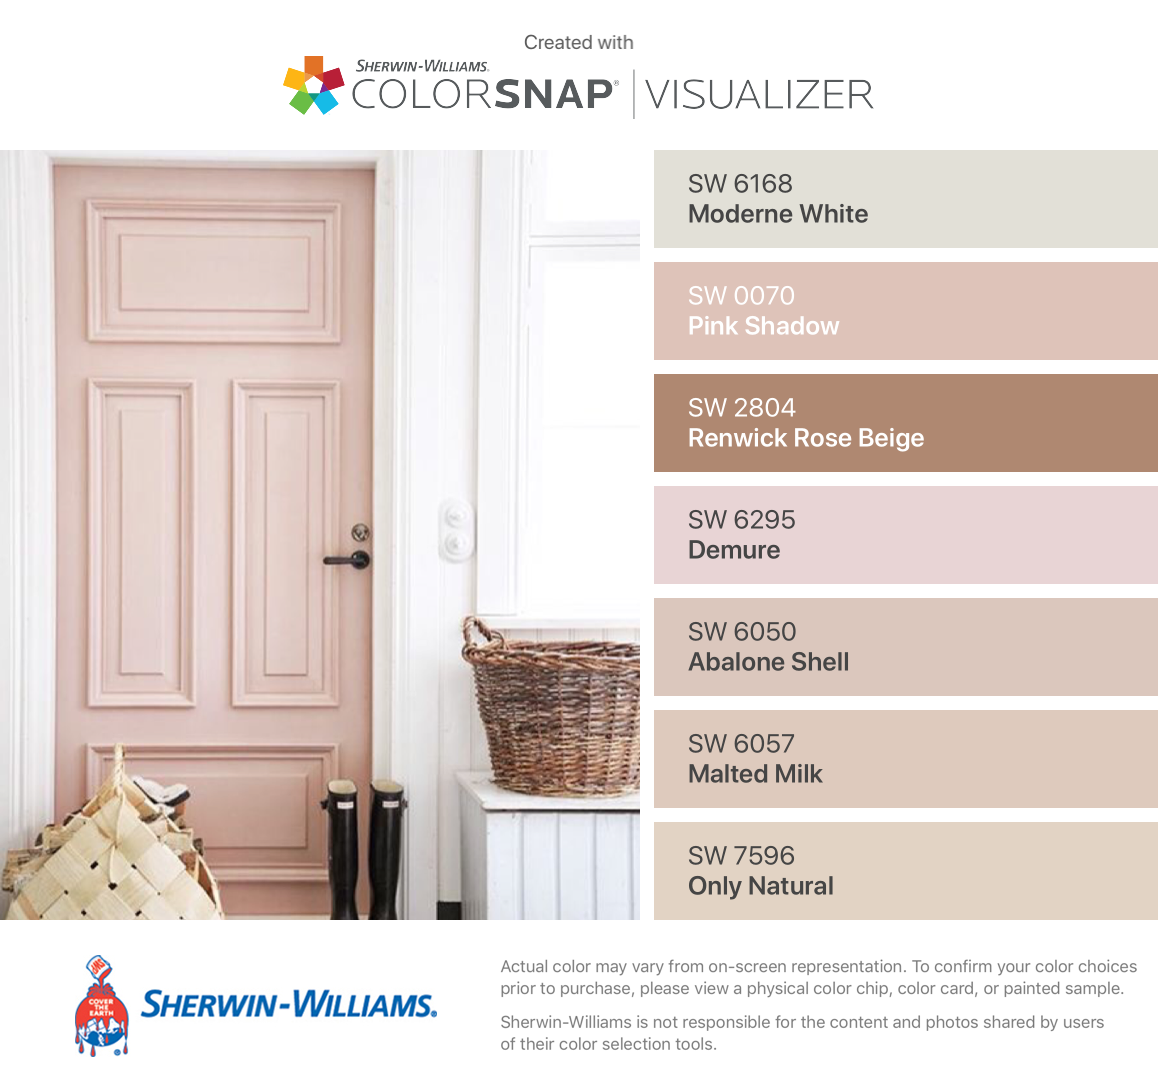 I Found These Colors With Colorsnap Visualizer For Iphone By Sherwin Williams Moderne White Sw 6168 Pink Shadow 0070 Renwick Rose Beige 2804